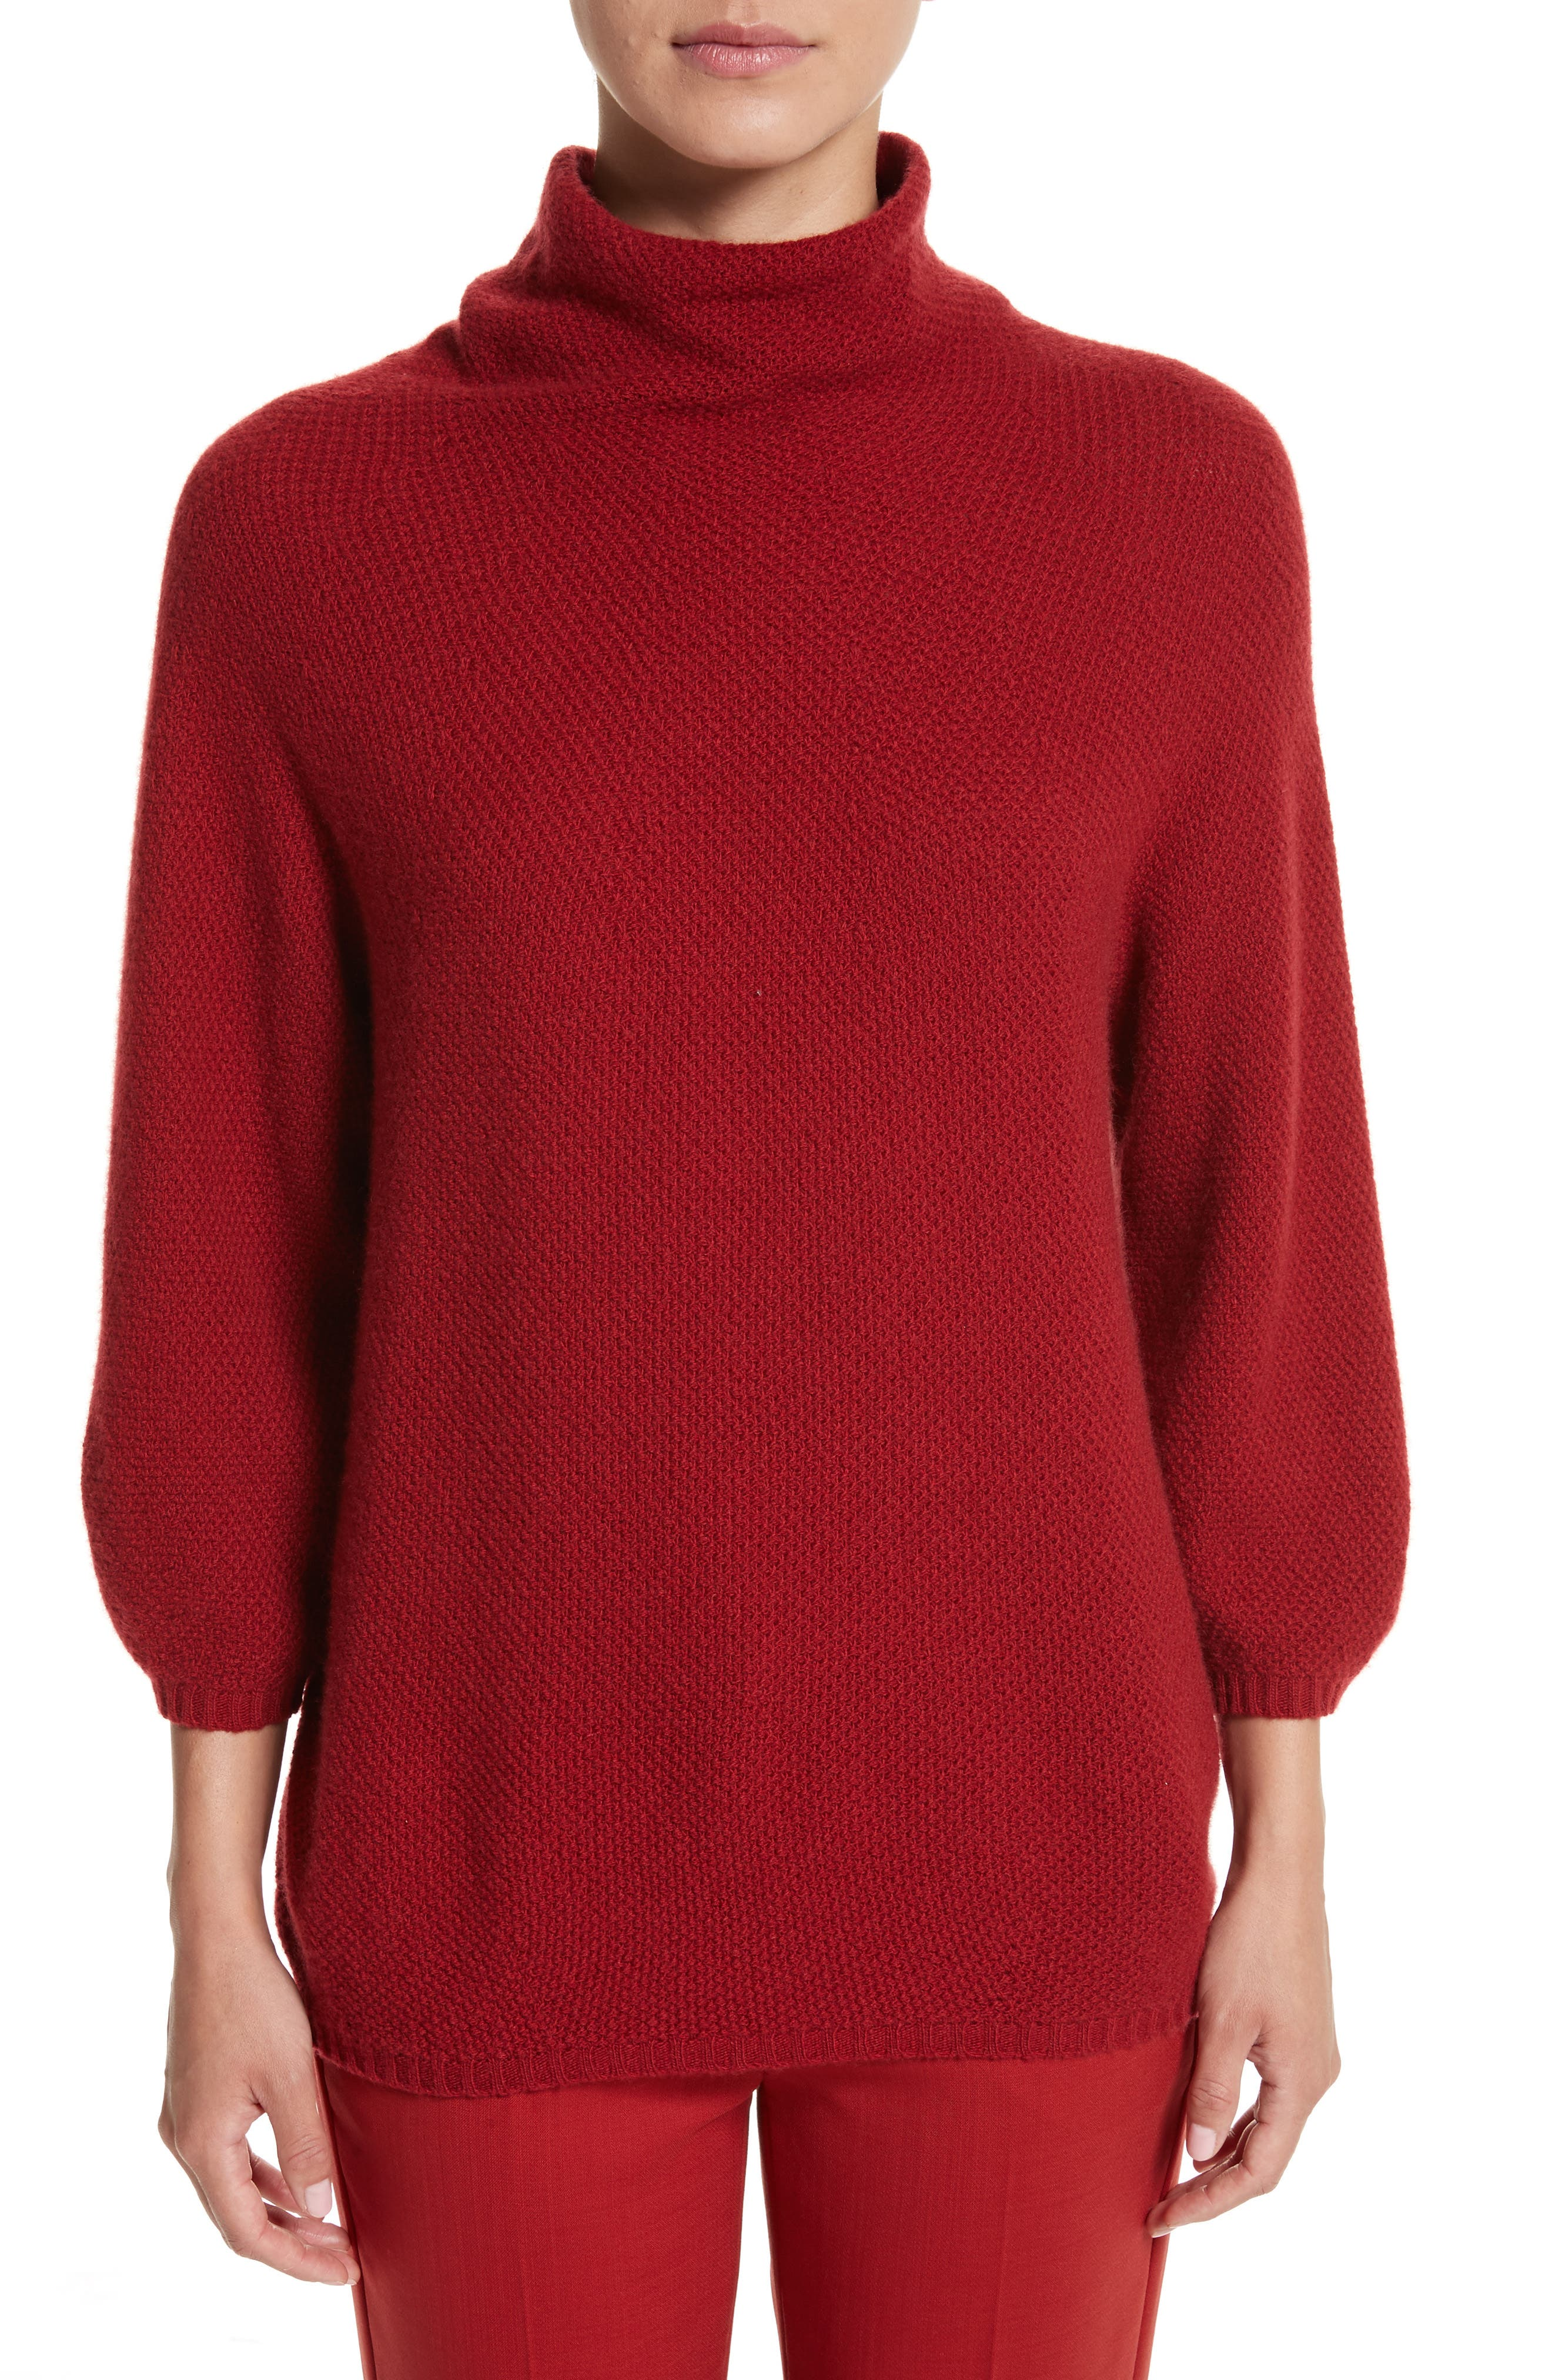 Belgio Wool & Cashmere Sweater,                             Main thumbnail 1, color,                             614